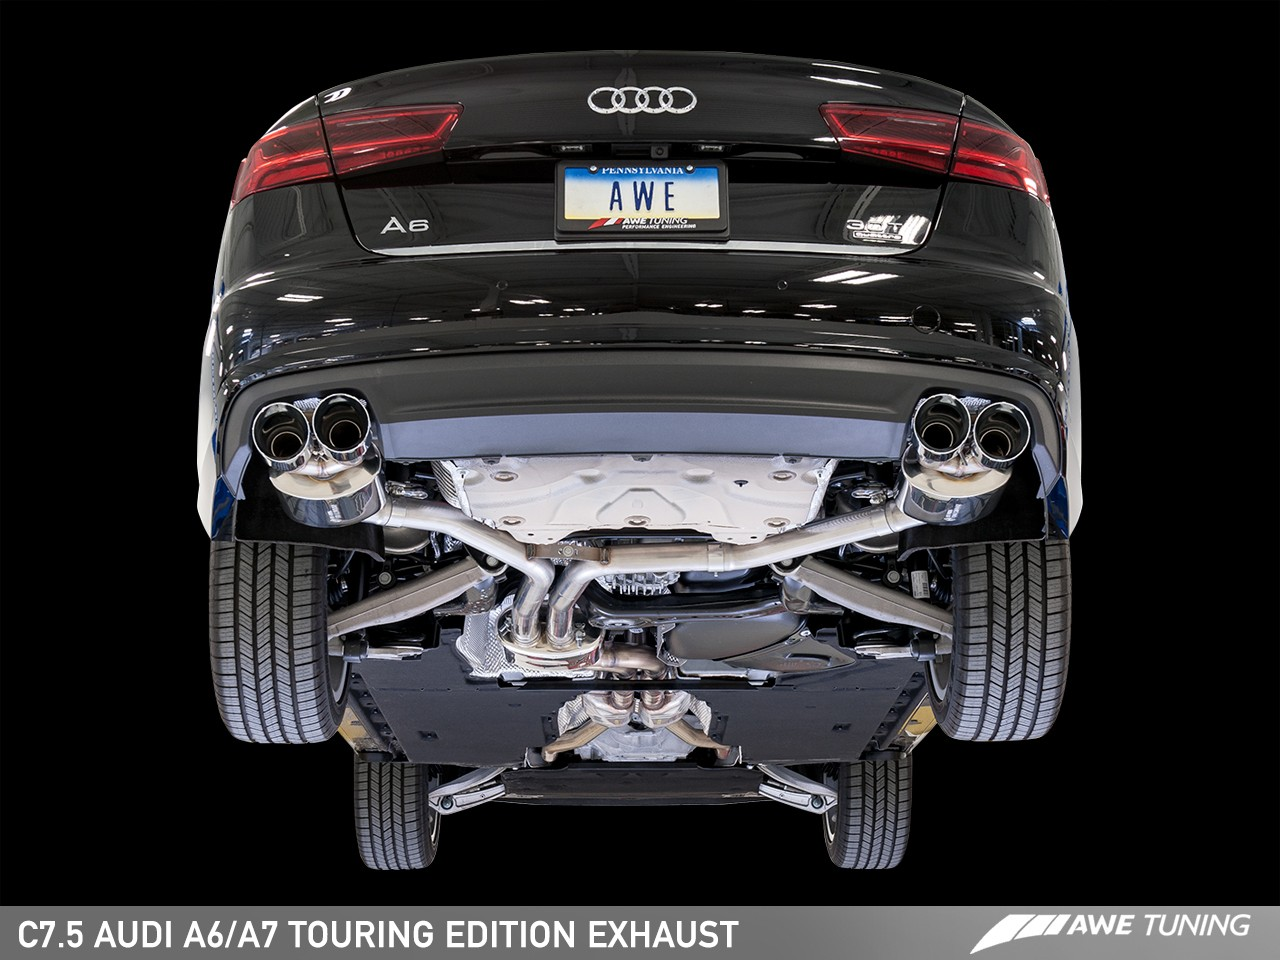 Awe Tuning Audi C75 A7 Touring Edition Exhaust Suite Awe Tuning